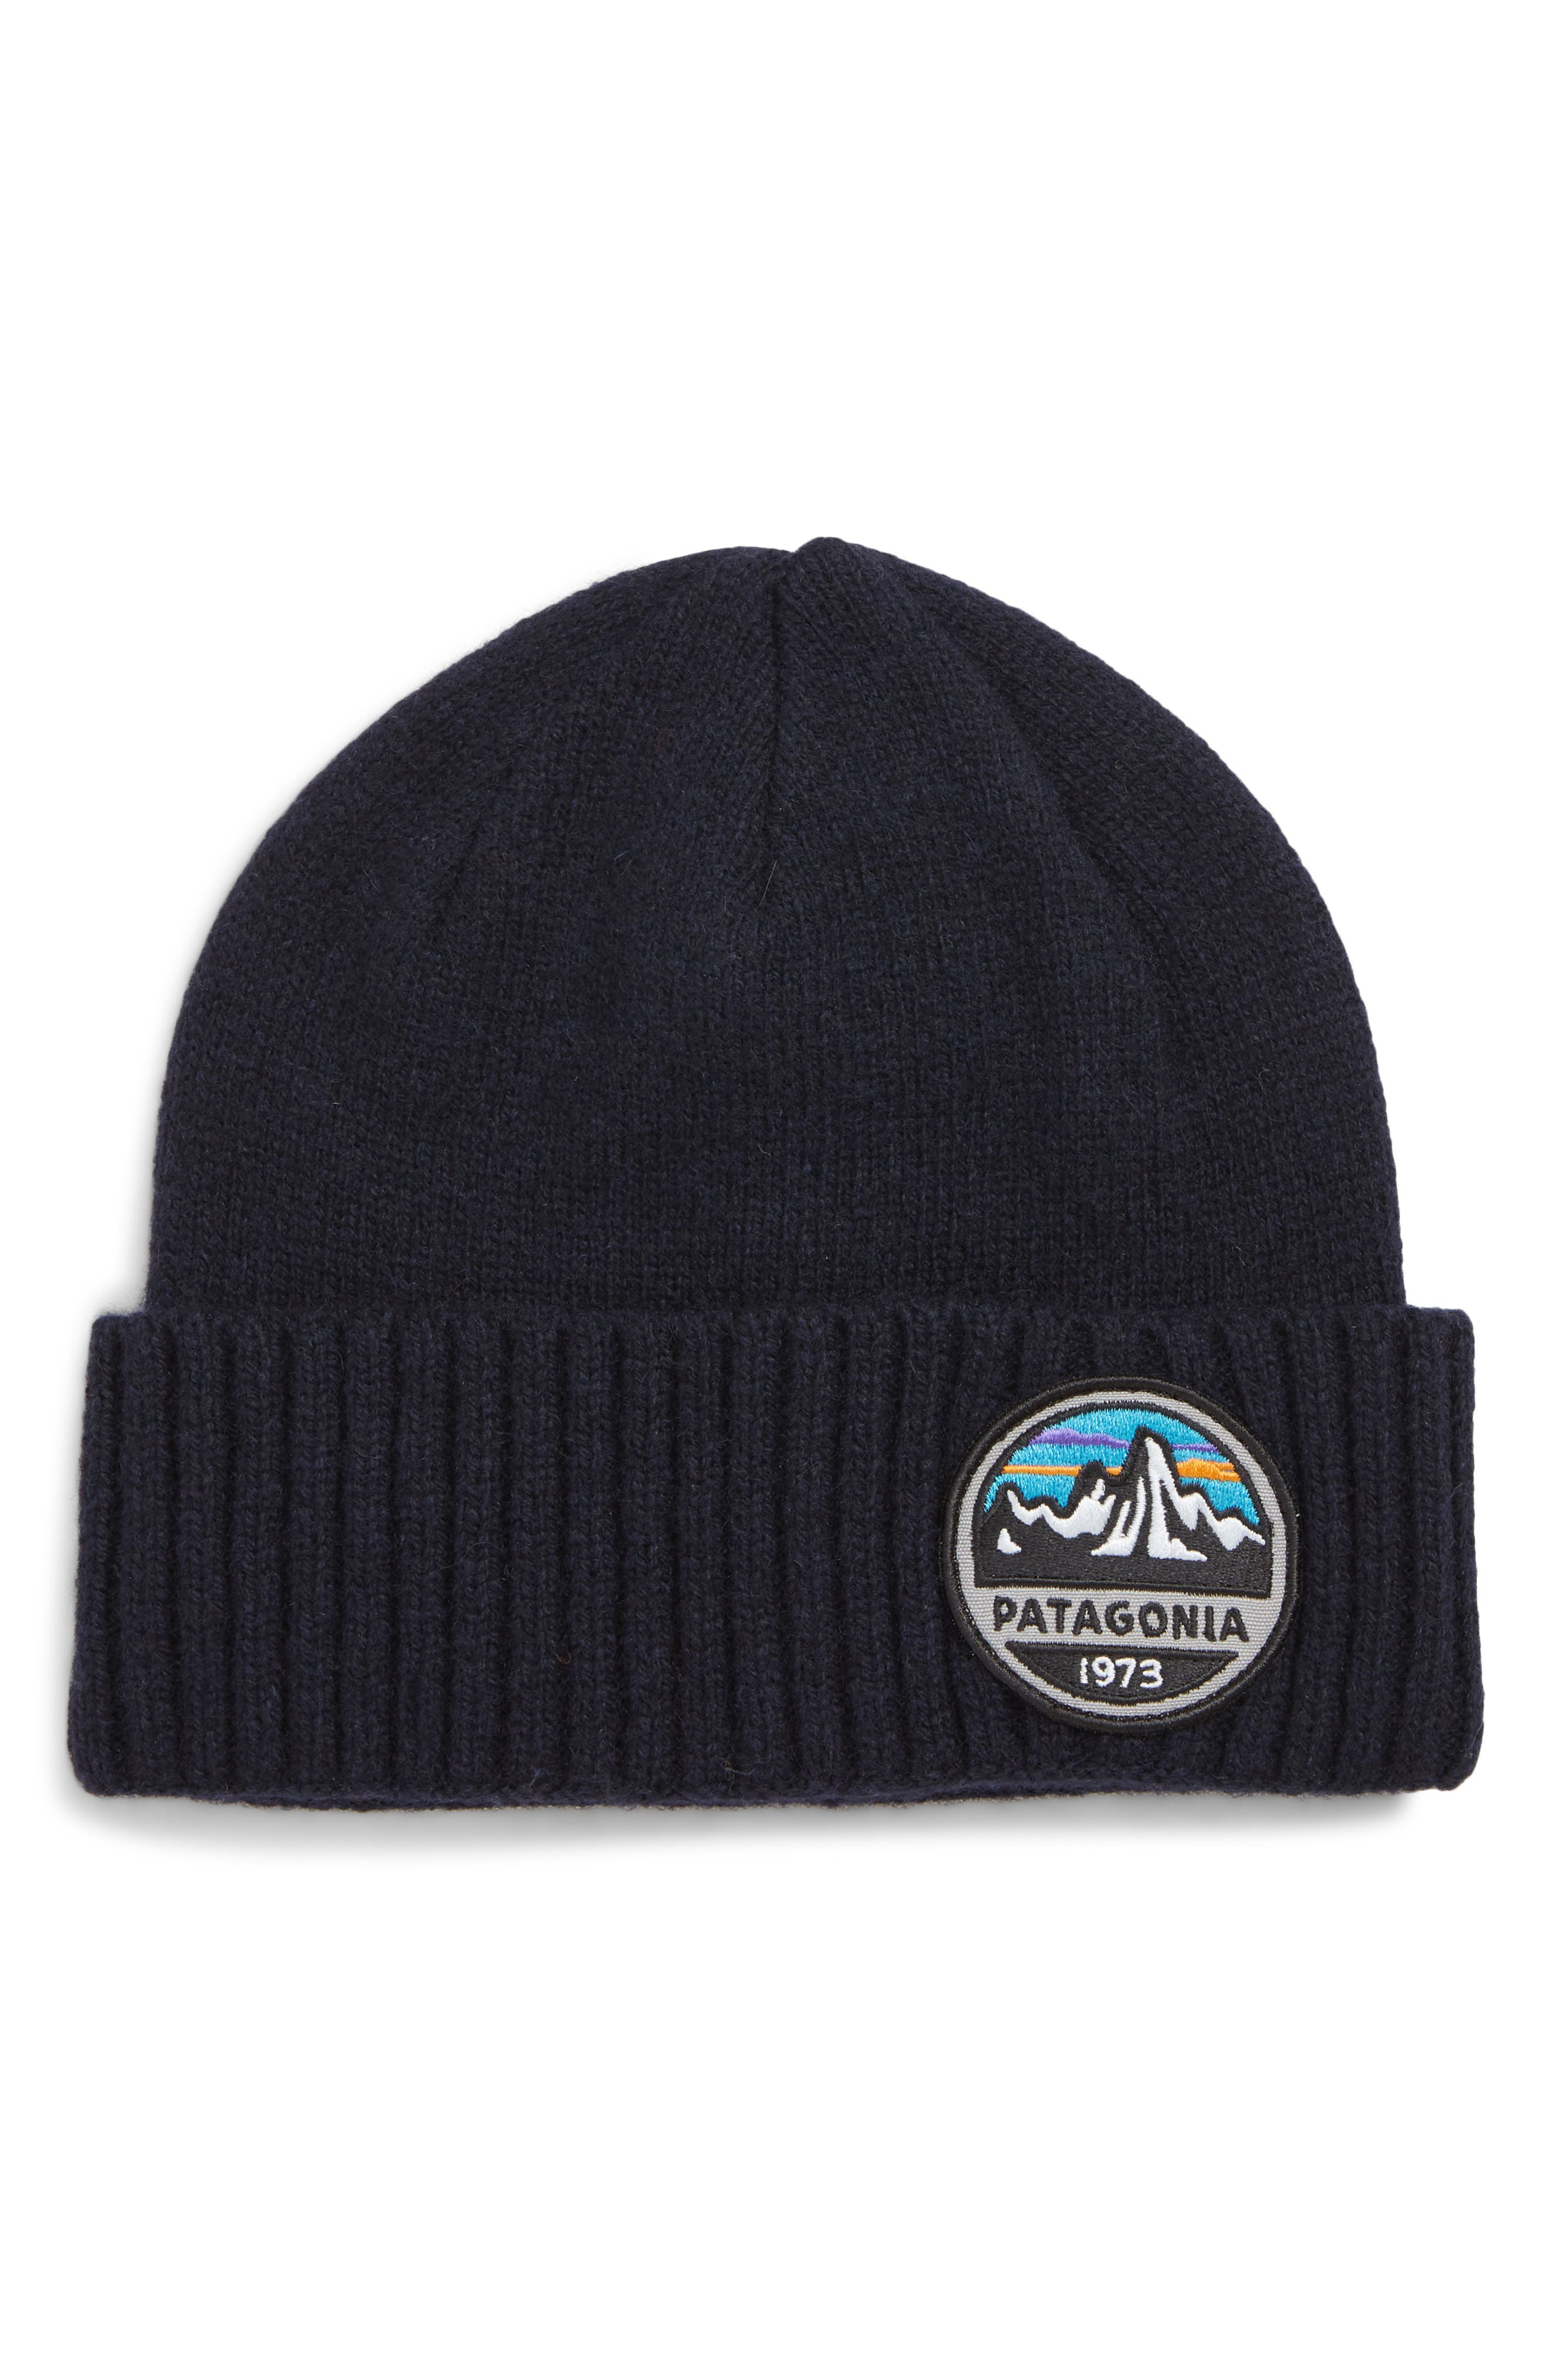 Brodeo Wool Stocking Cap,                         Main,                         color, FITZ ROY SCOPE NAVY BLUE